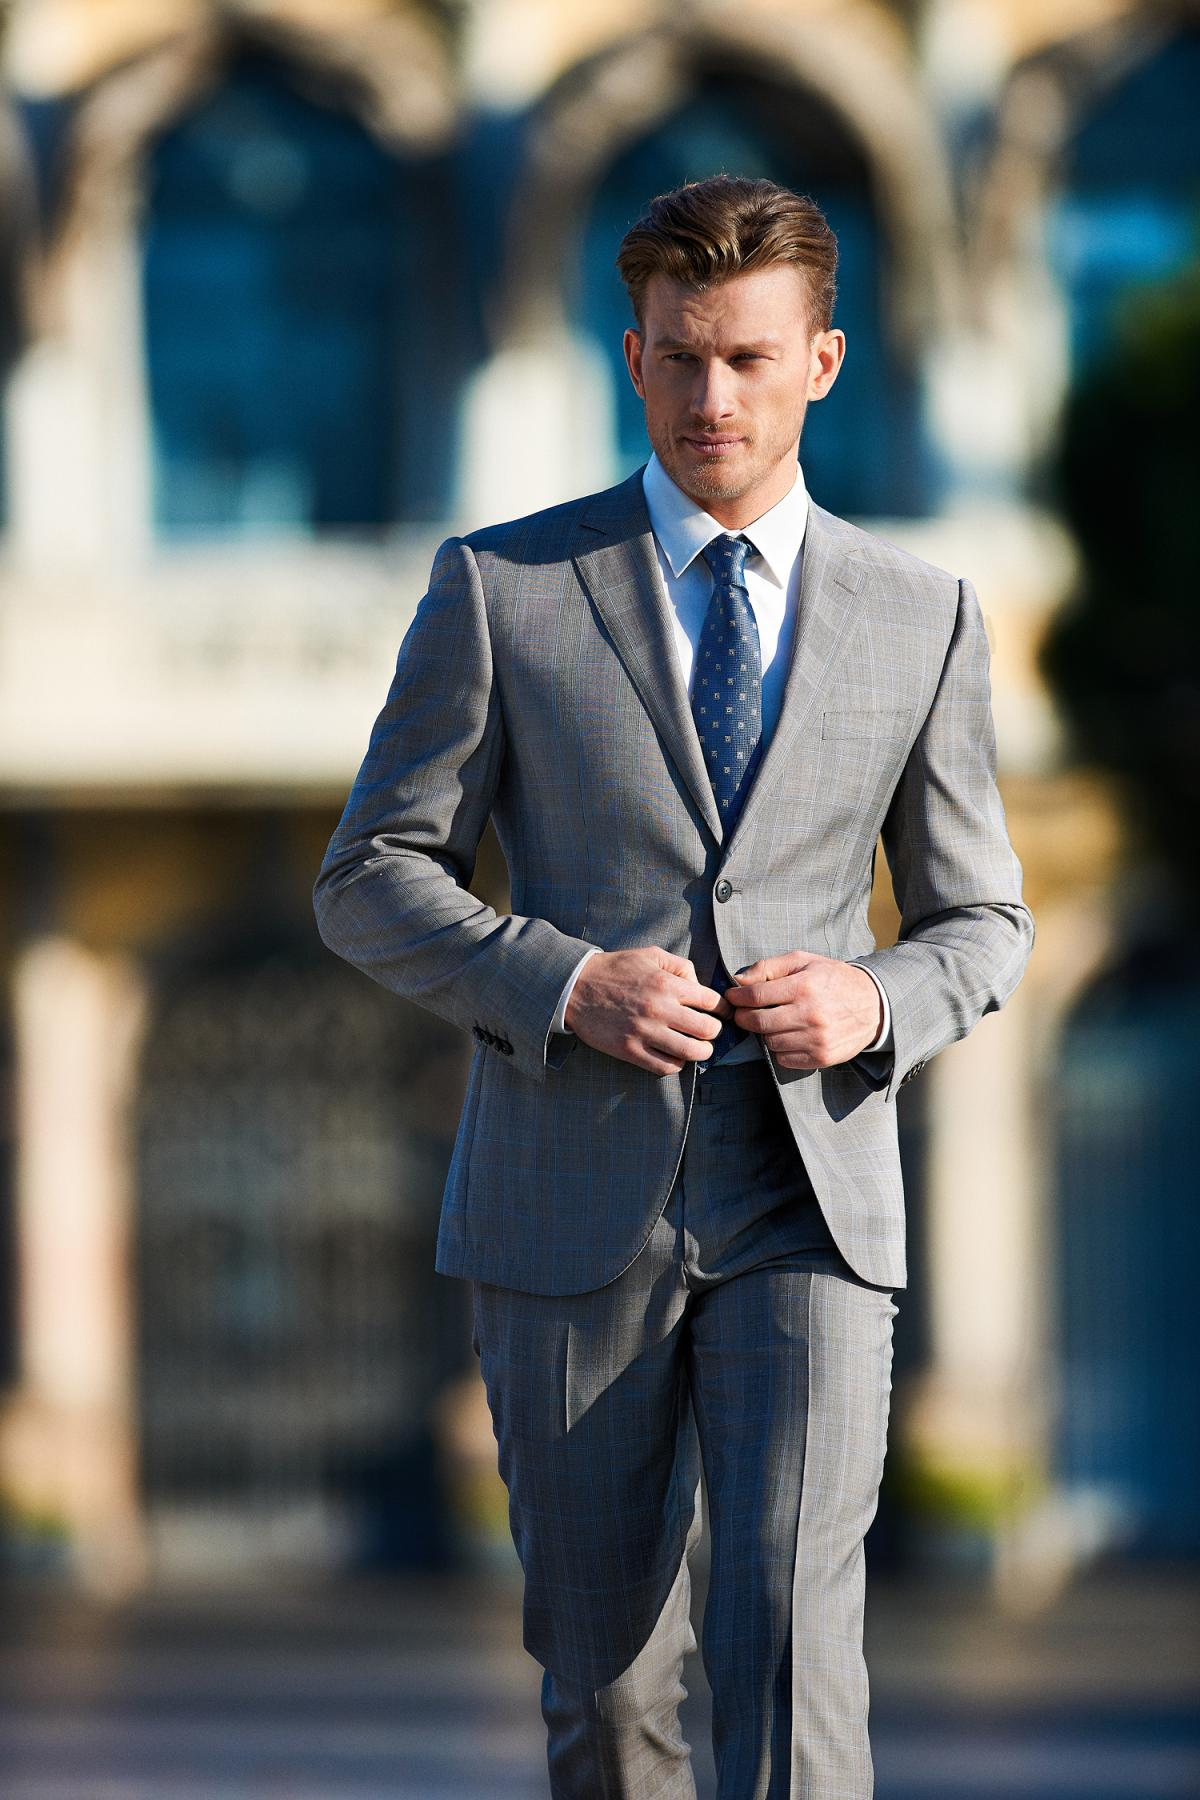 Classic combination of grey suit, white shirt and blue blue tie